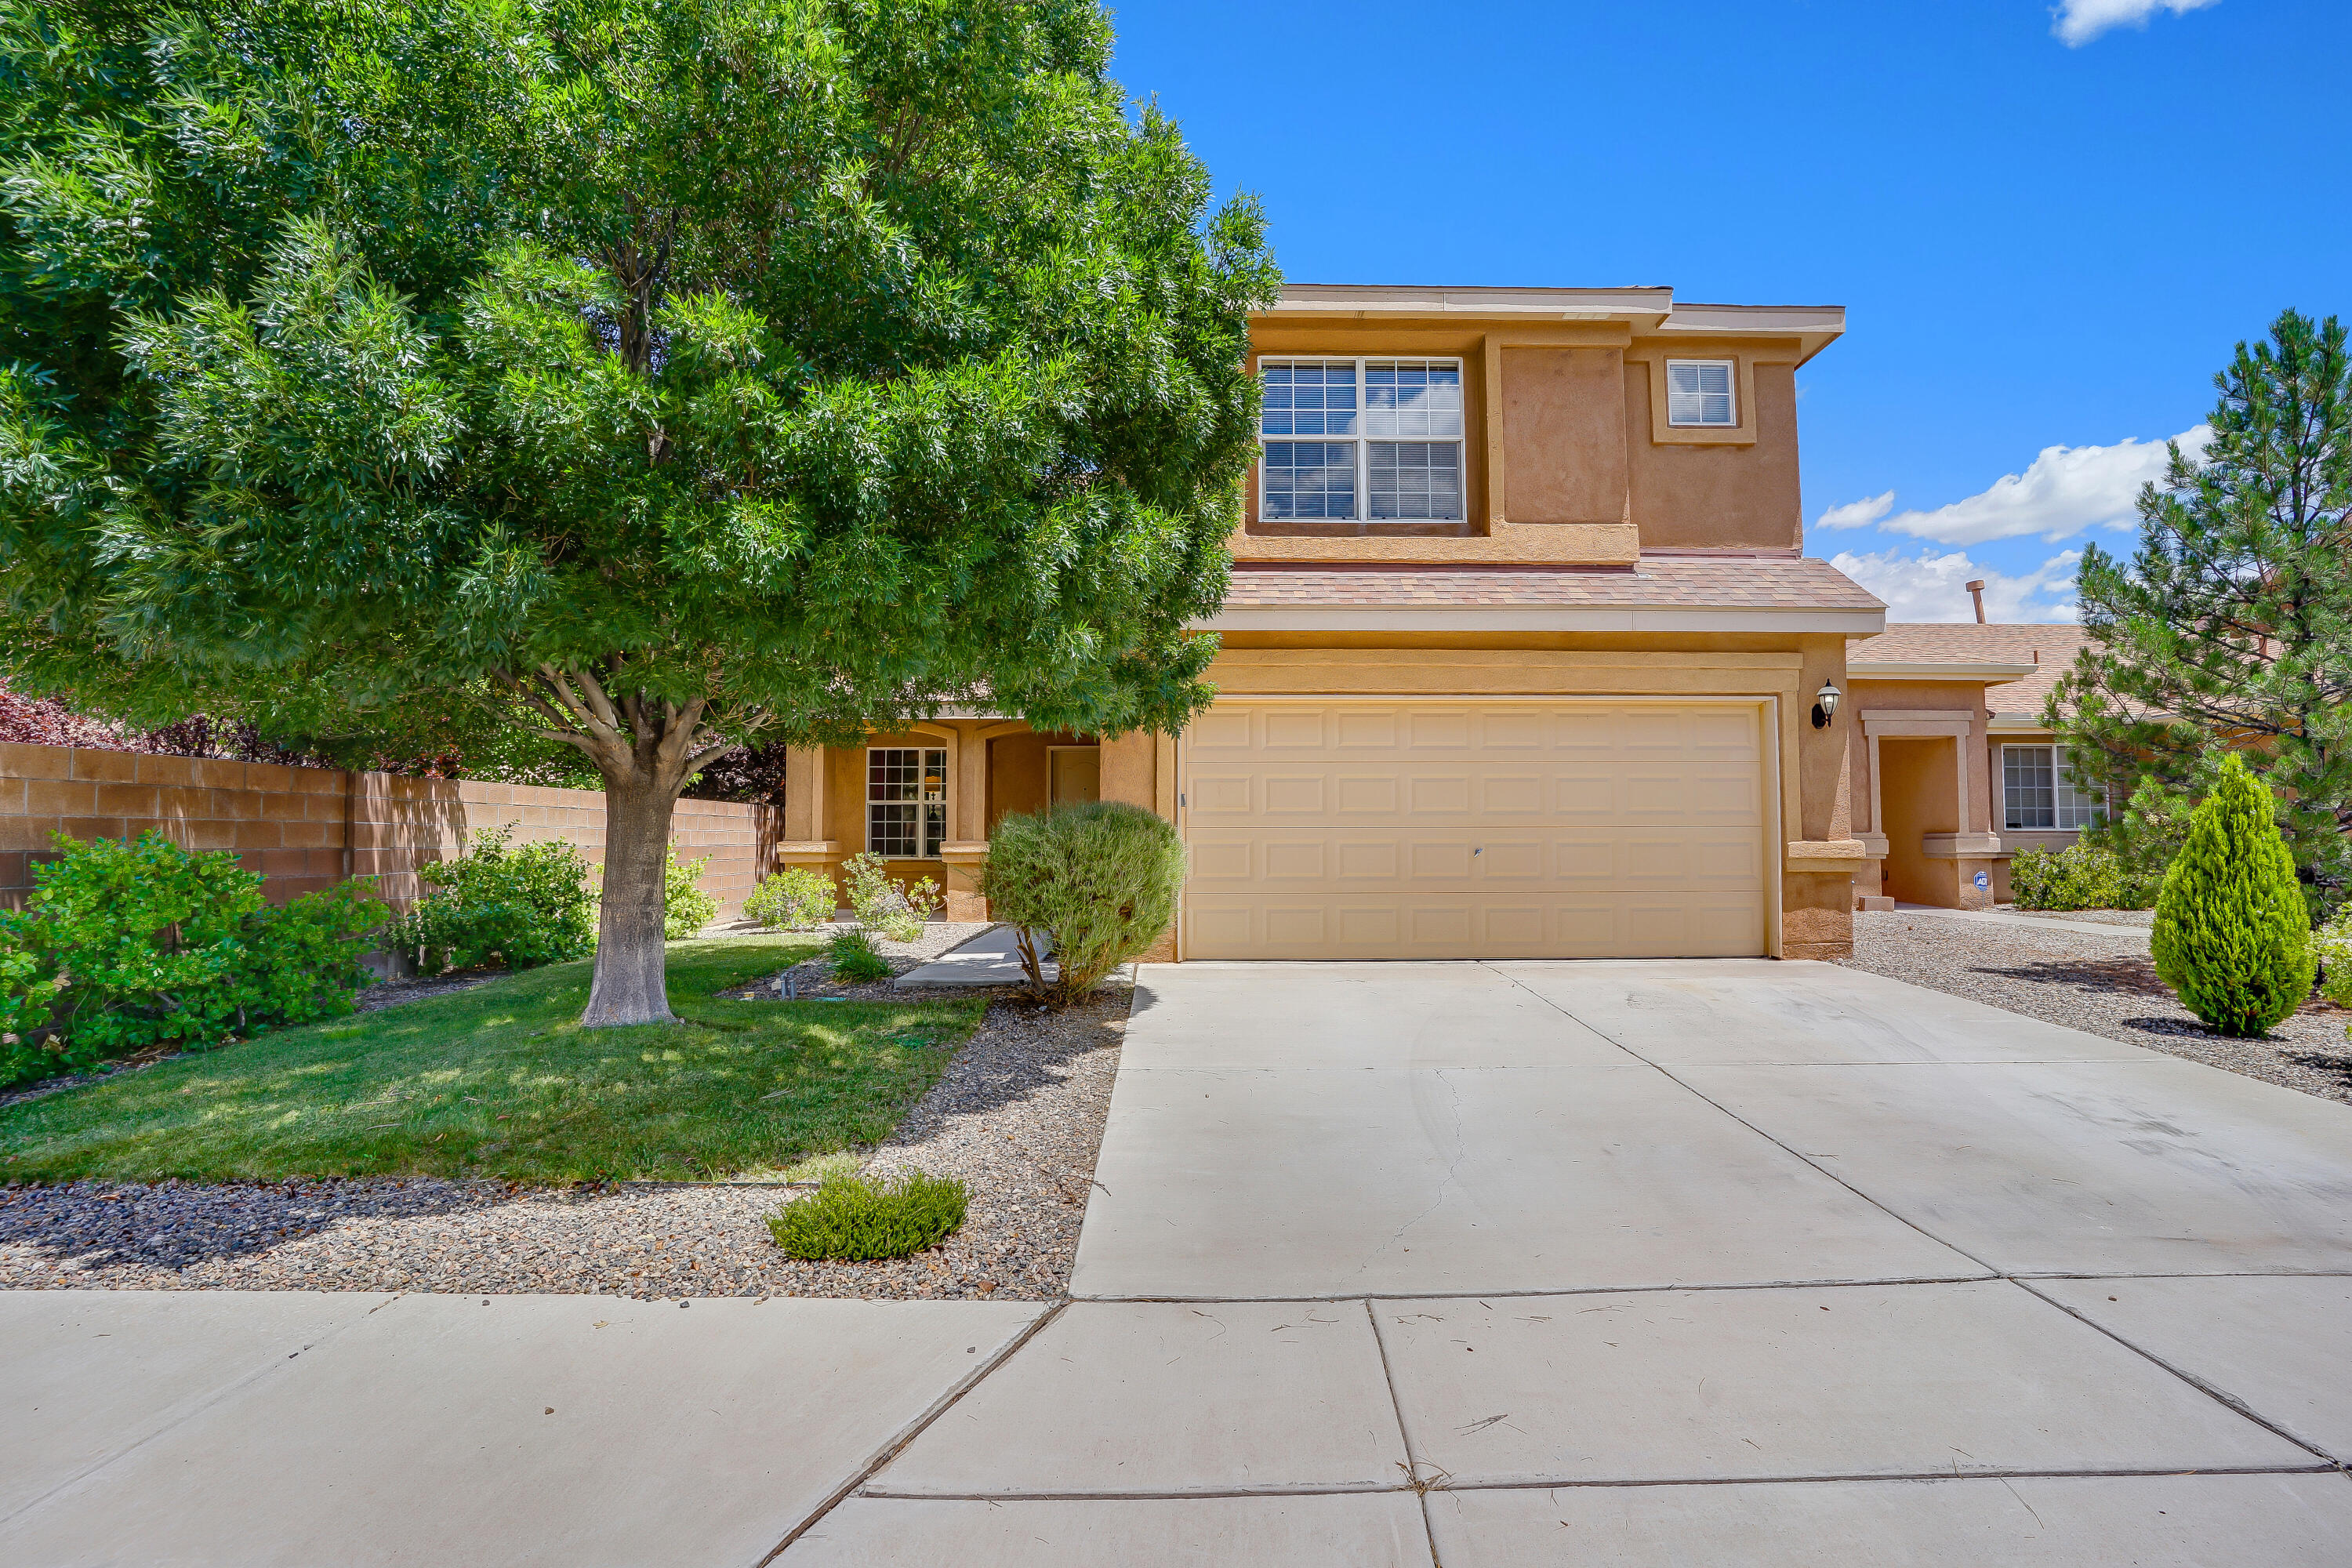 Welcome to this lovely Pulte home in Ventana Ranch.  Recently updated with modern wood like tile, and newer windows and doors.  This home features a nice open kitchen with great storage, a spacious living area, and a loft upstairs which could make an additional living space, workout area, or office space.  Master suite is very spacious and features a nice master bathroom and walk-in closet.  You'll love the big backyard with a covered patio, low maintenance xeriscaping and a nice storage shed.  Come see this one today.